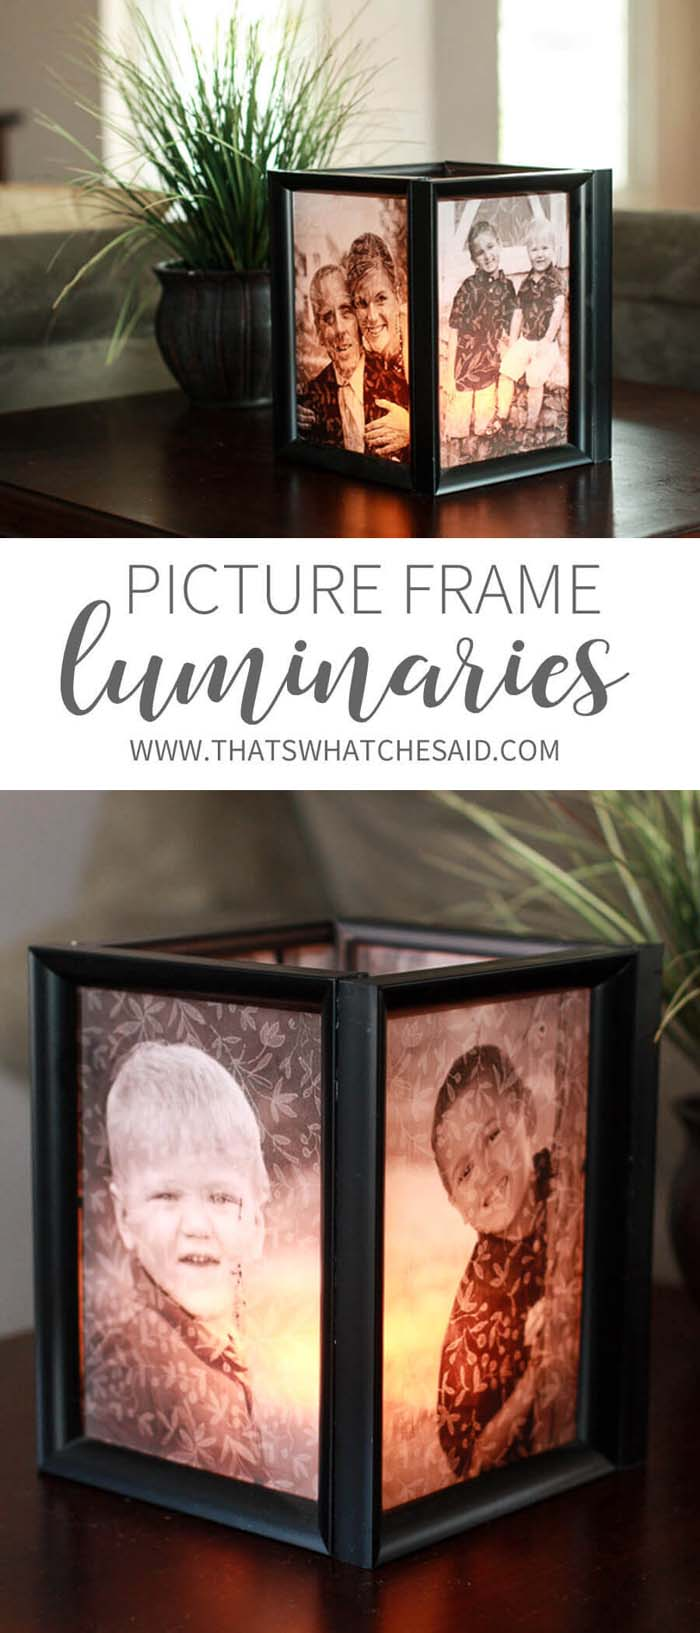 Picture Frame Luminaries #dollarstore #diy #homedecor #decorhomeideas